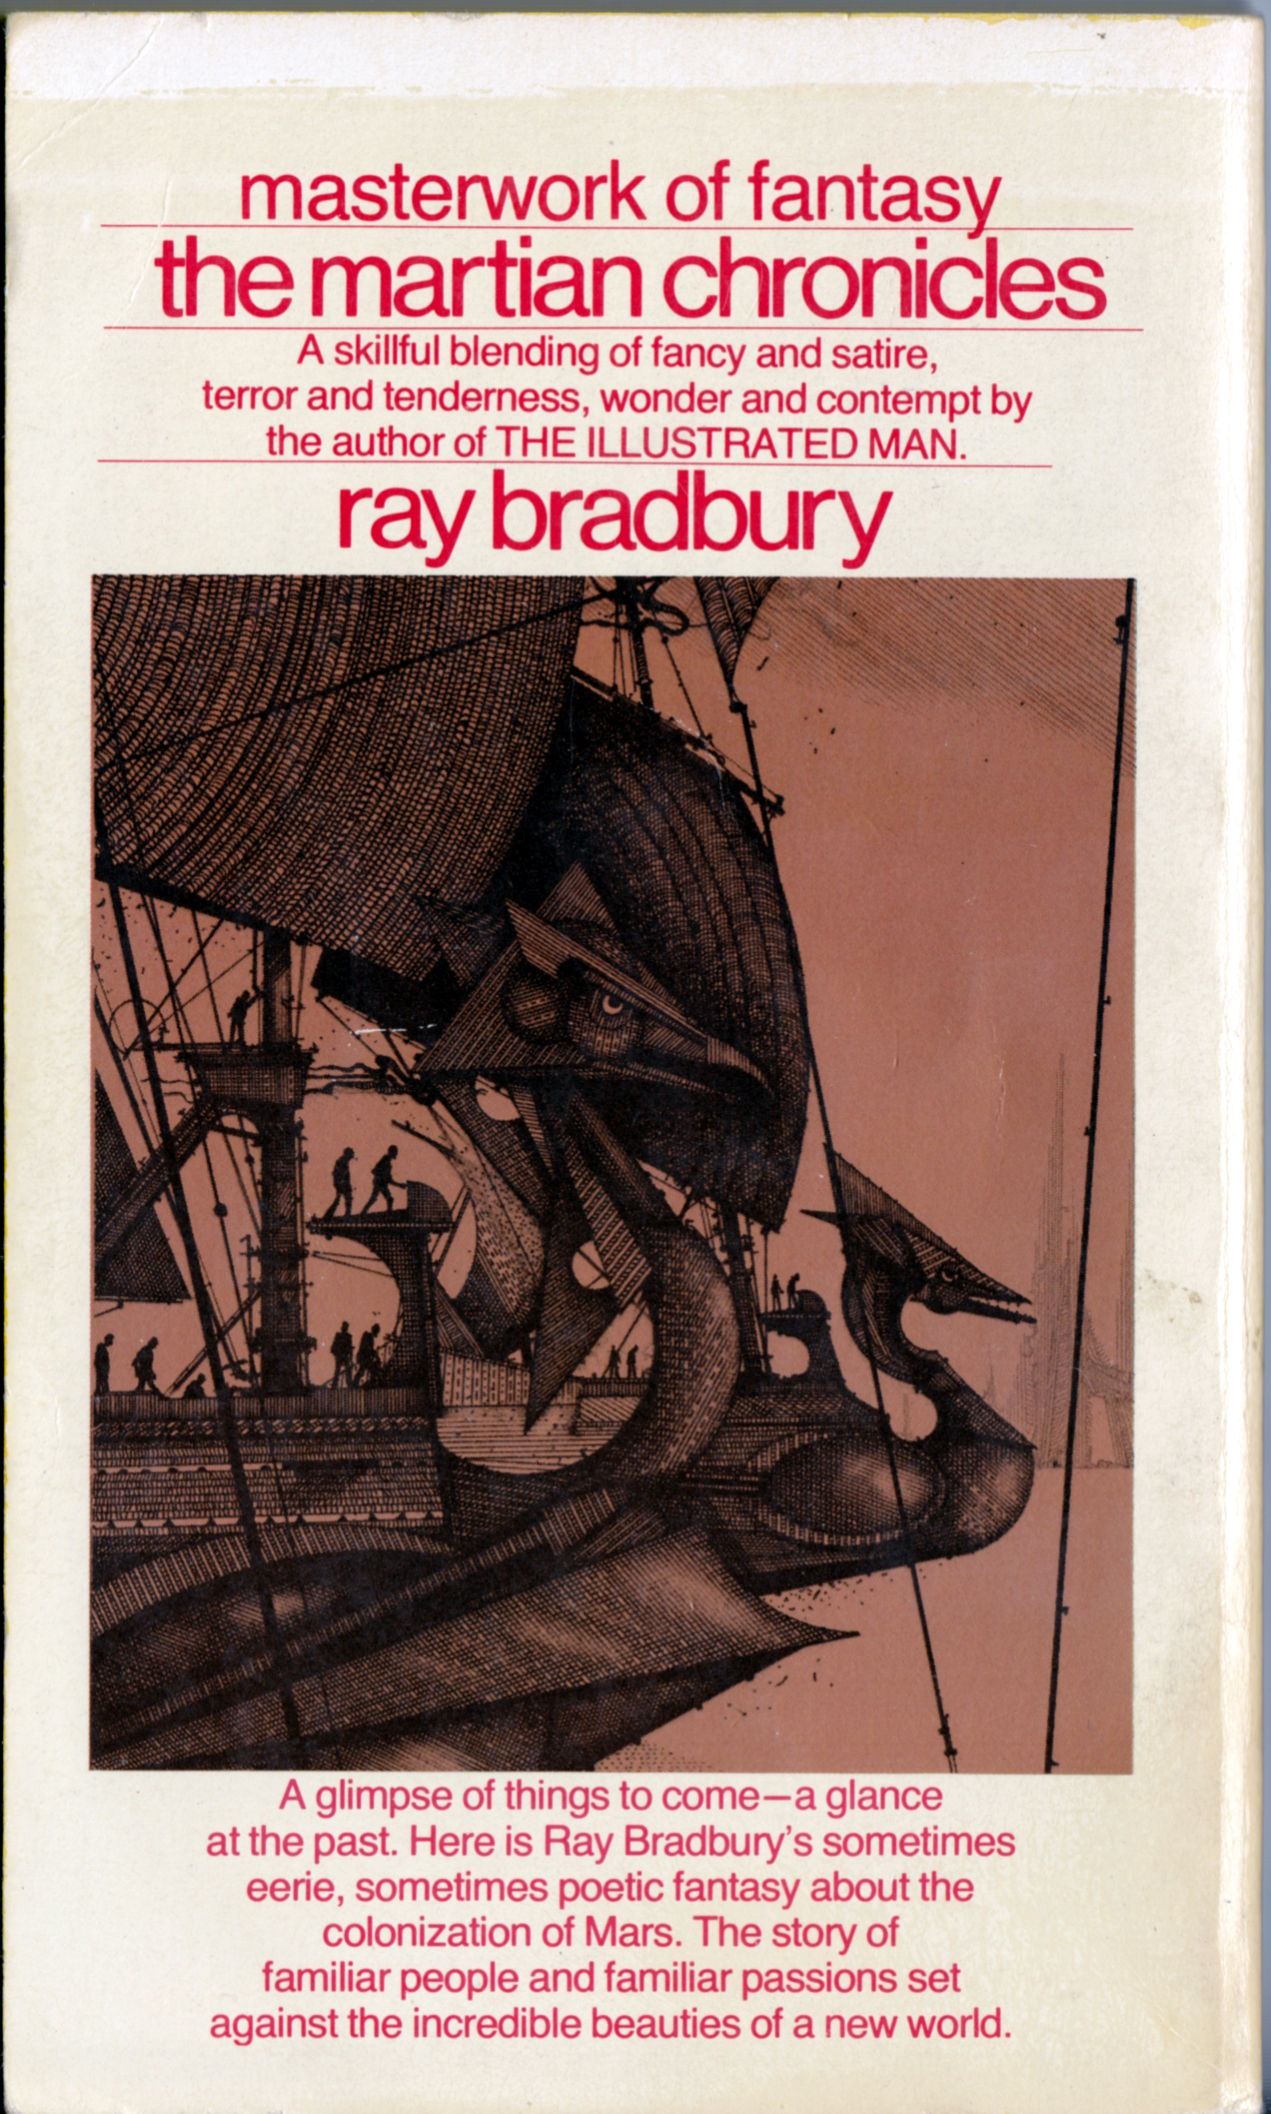 an analysis of martian chronicles by ray bradbury Ray bradbury's the martian chronicles is a futuristic, science fiction novel that   the present paper applies a text-oriented analysis of stylistic elements that.